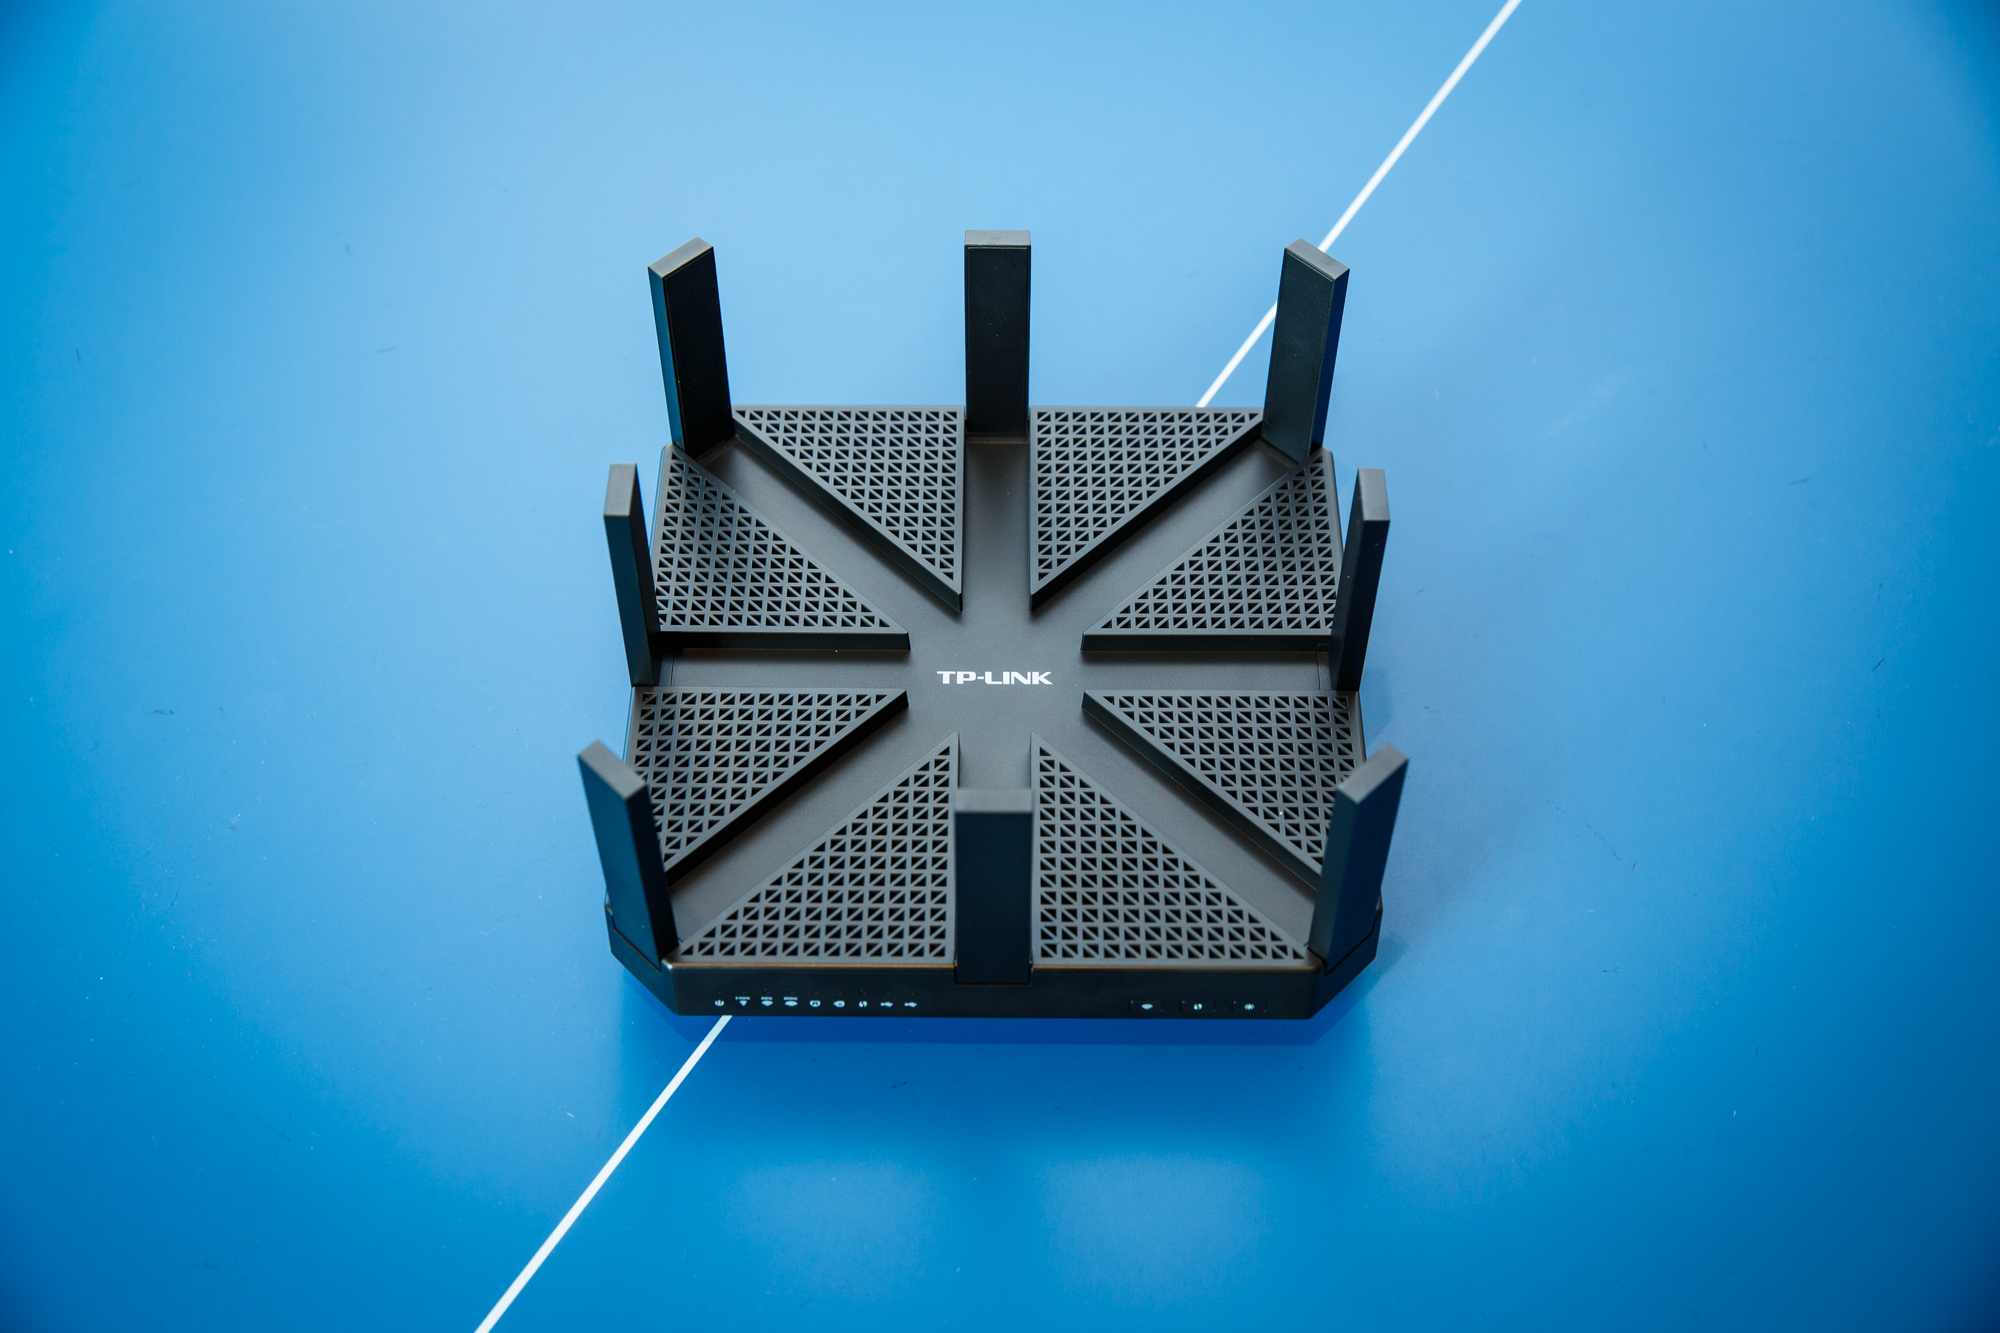 tp-link-router-7